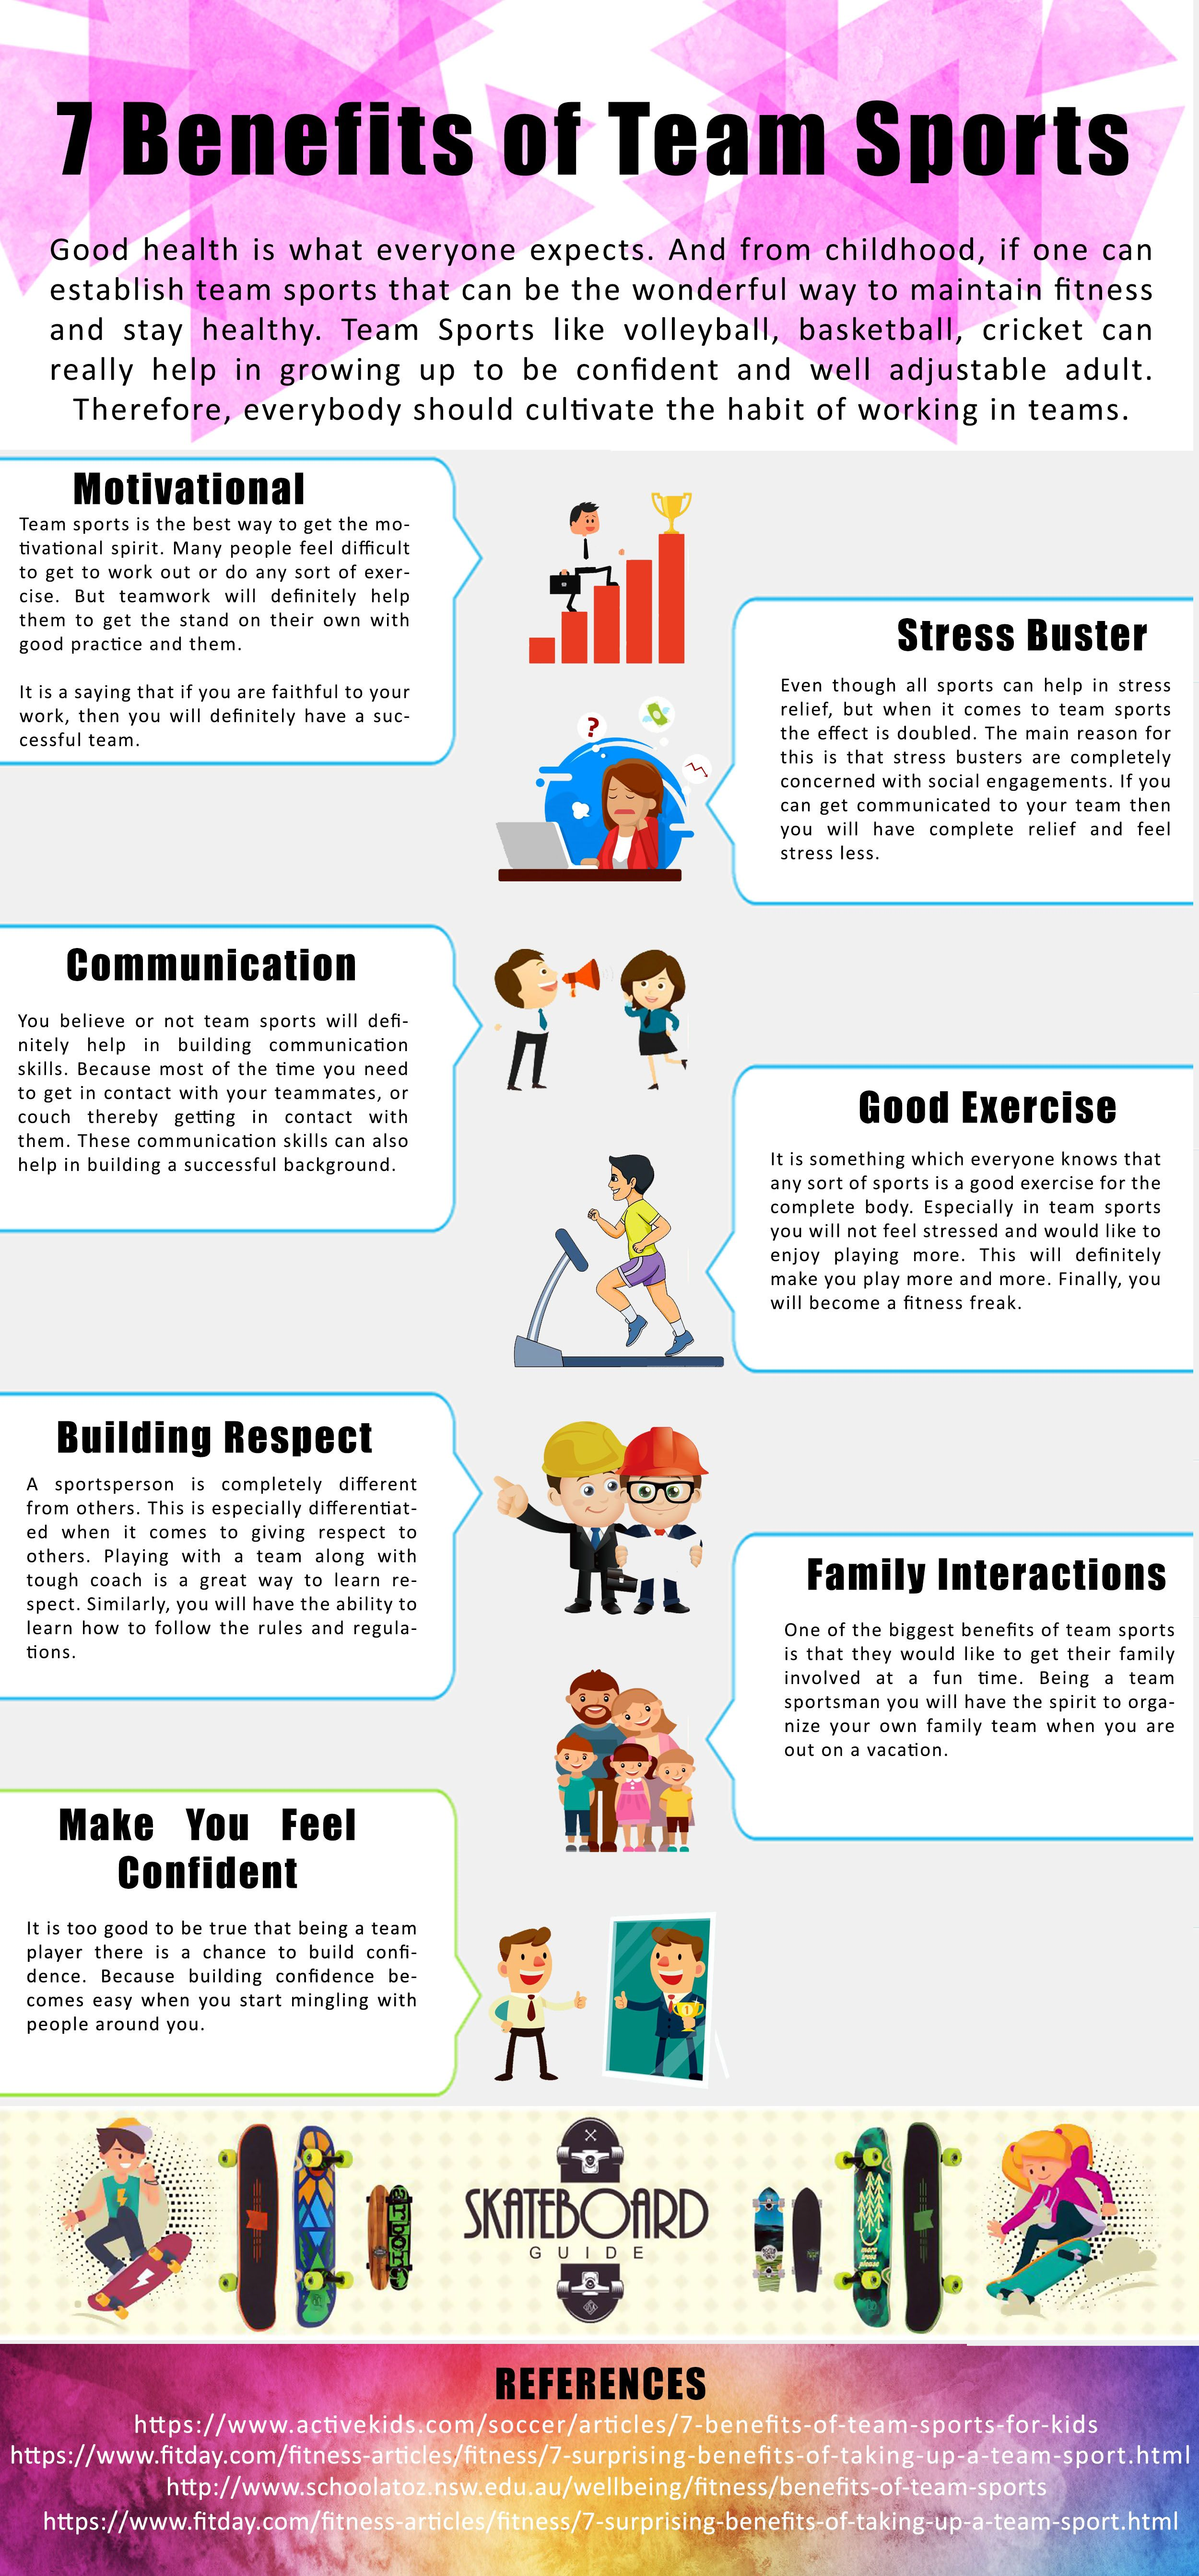 Benefits Of Team Sports For Young And Old 2020 21 Nfl Computer Predictions And Rankings Sports Parent Sports Team Fun Sports